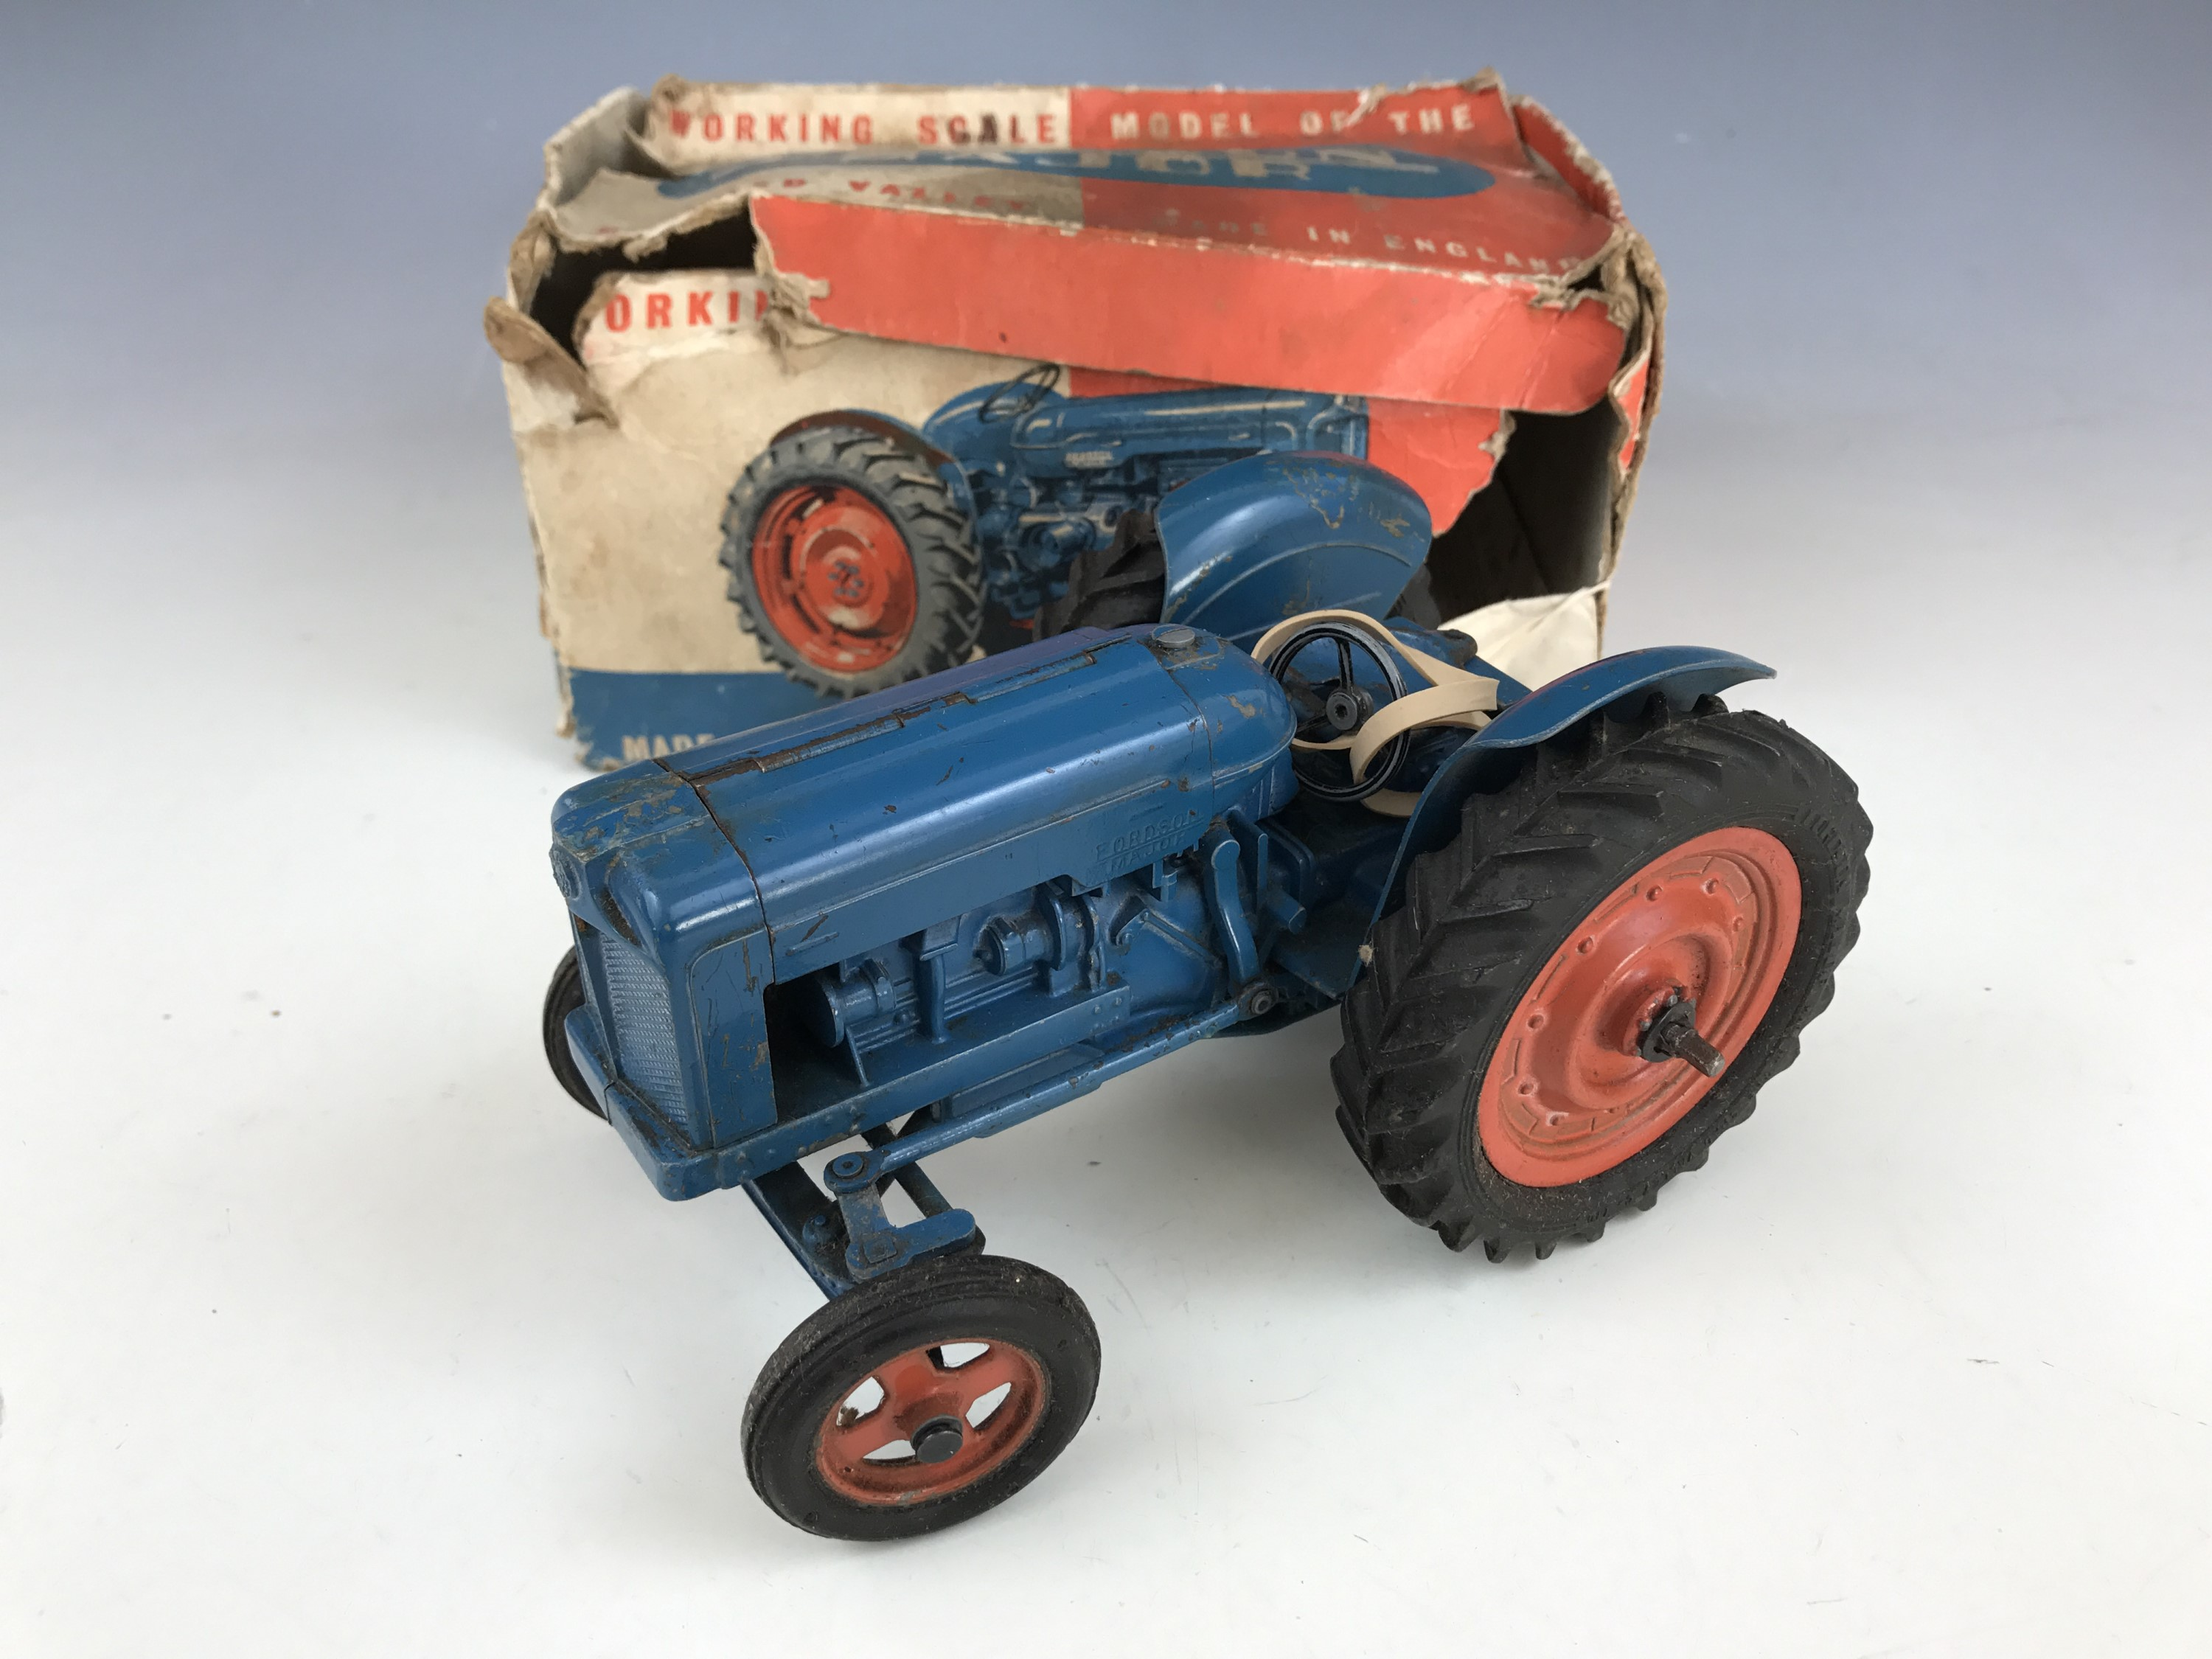 Lot 56 - A Chad Valley Co Ltd Working Scale Model of the New Fordson Major tractor, in petrol blue with red